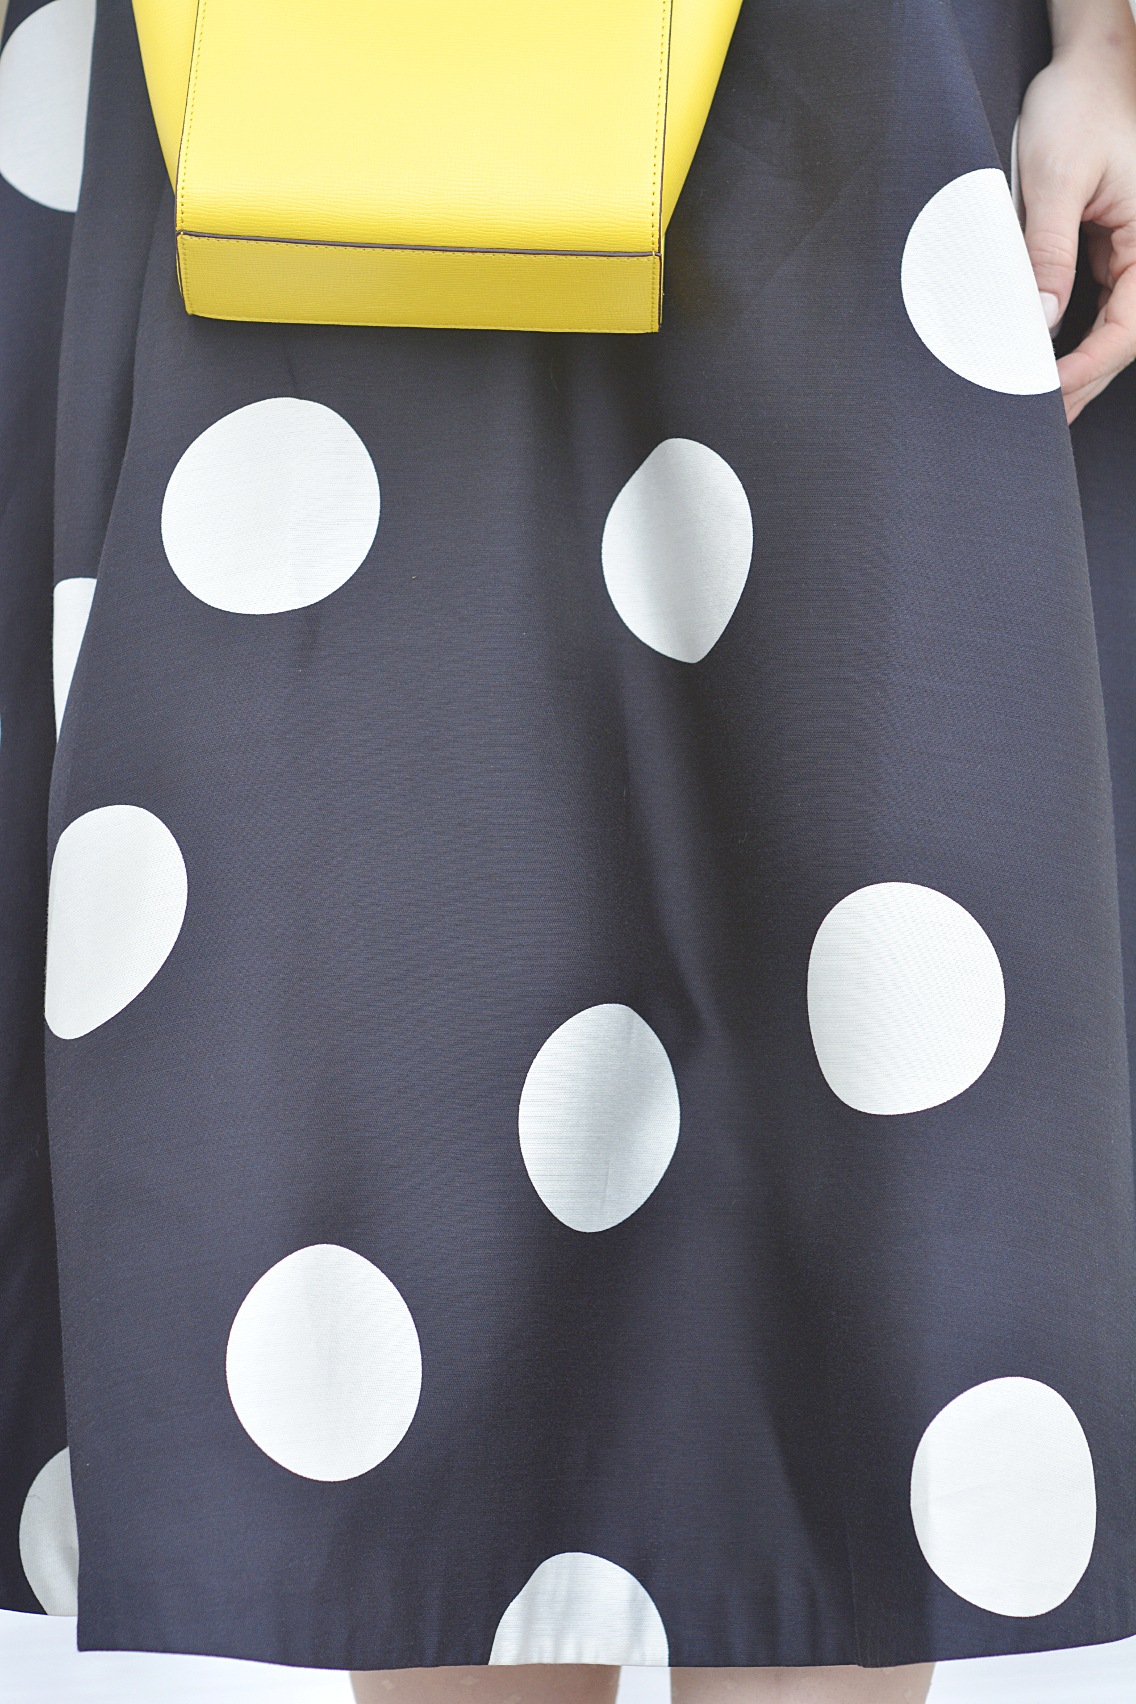 LK Bennett Polka Dot Midi Dress Spring 2015 37